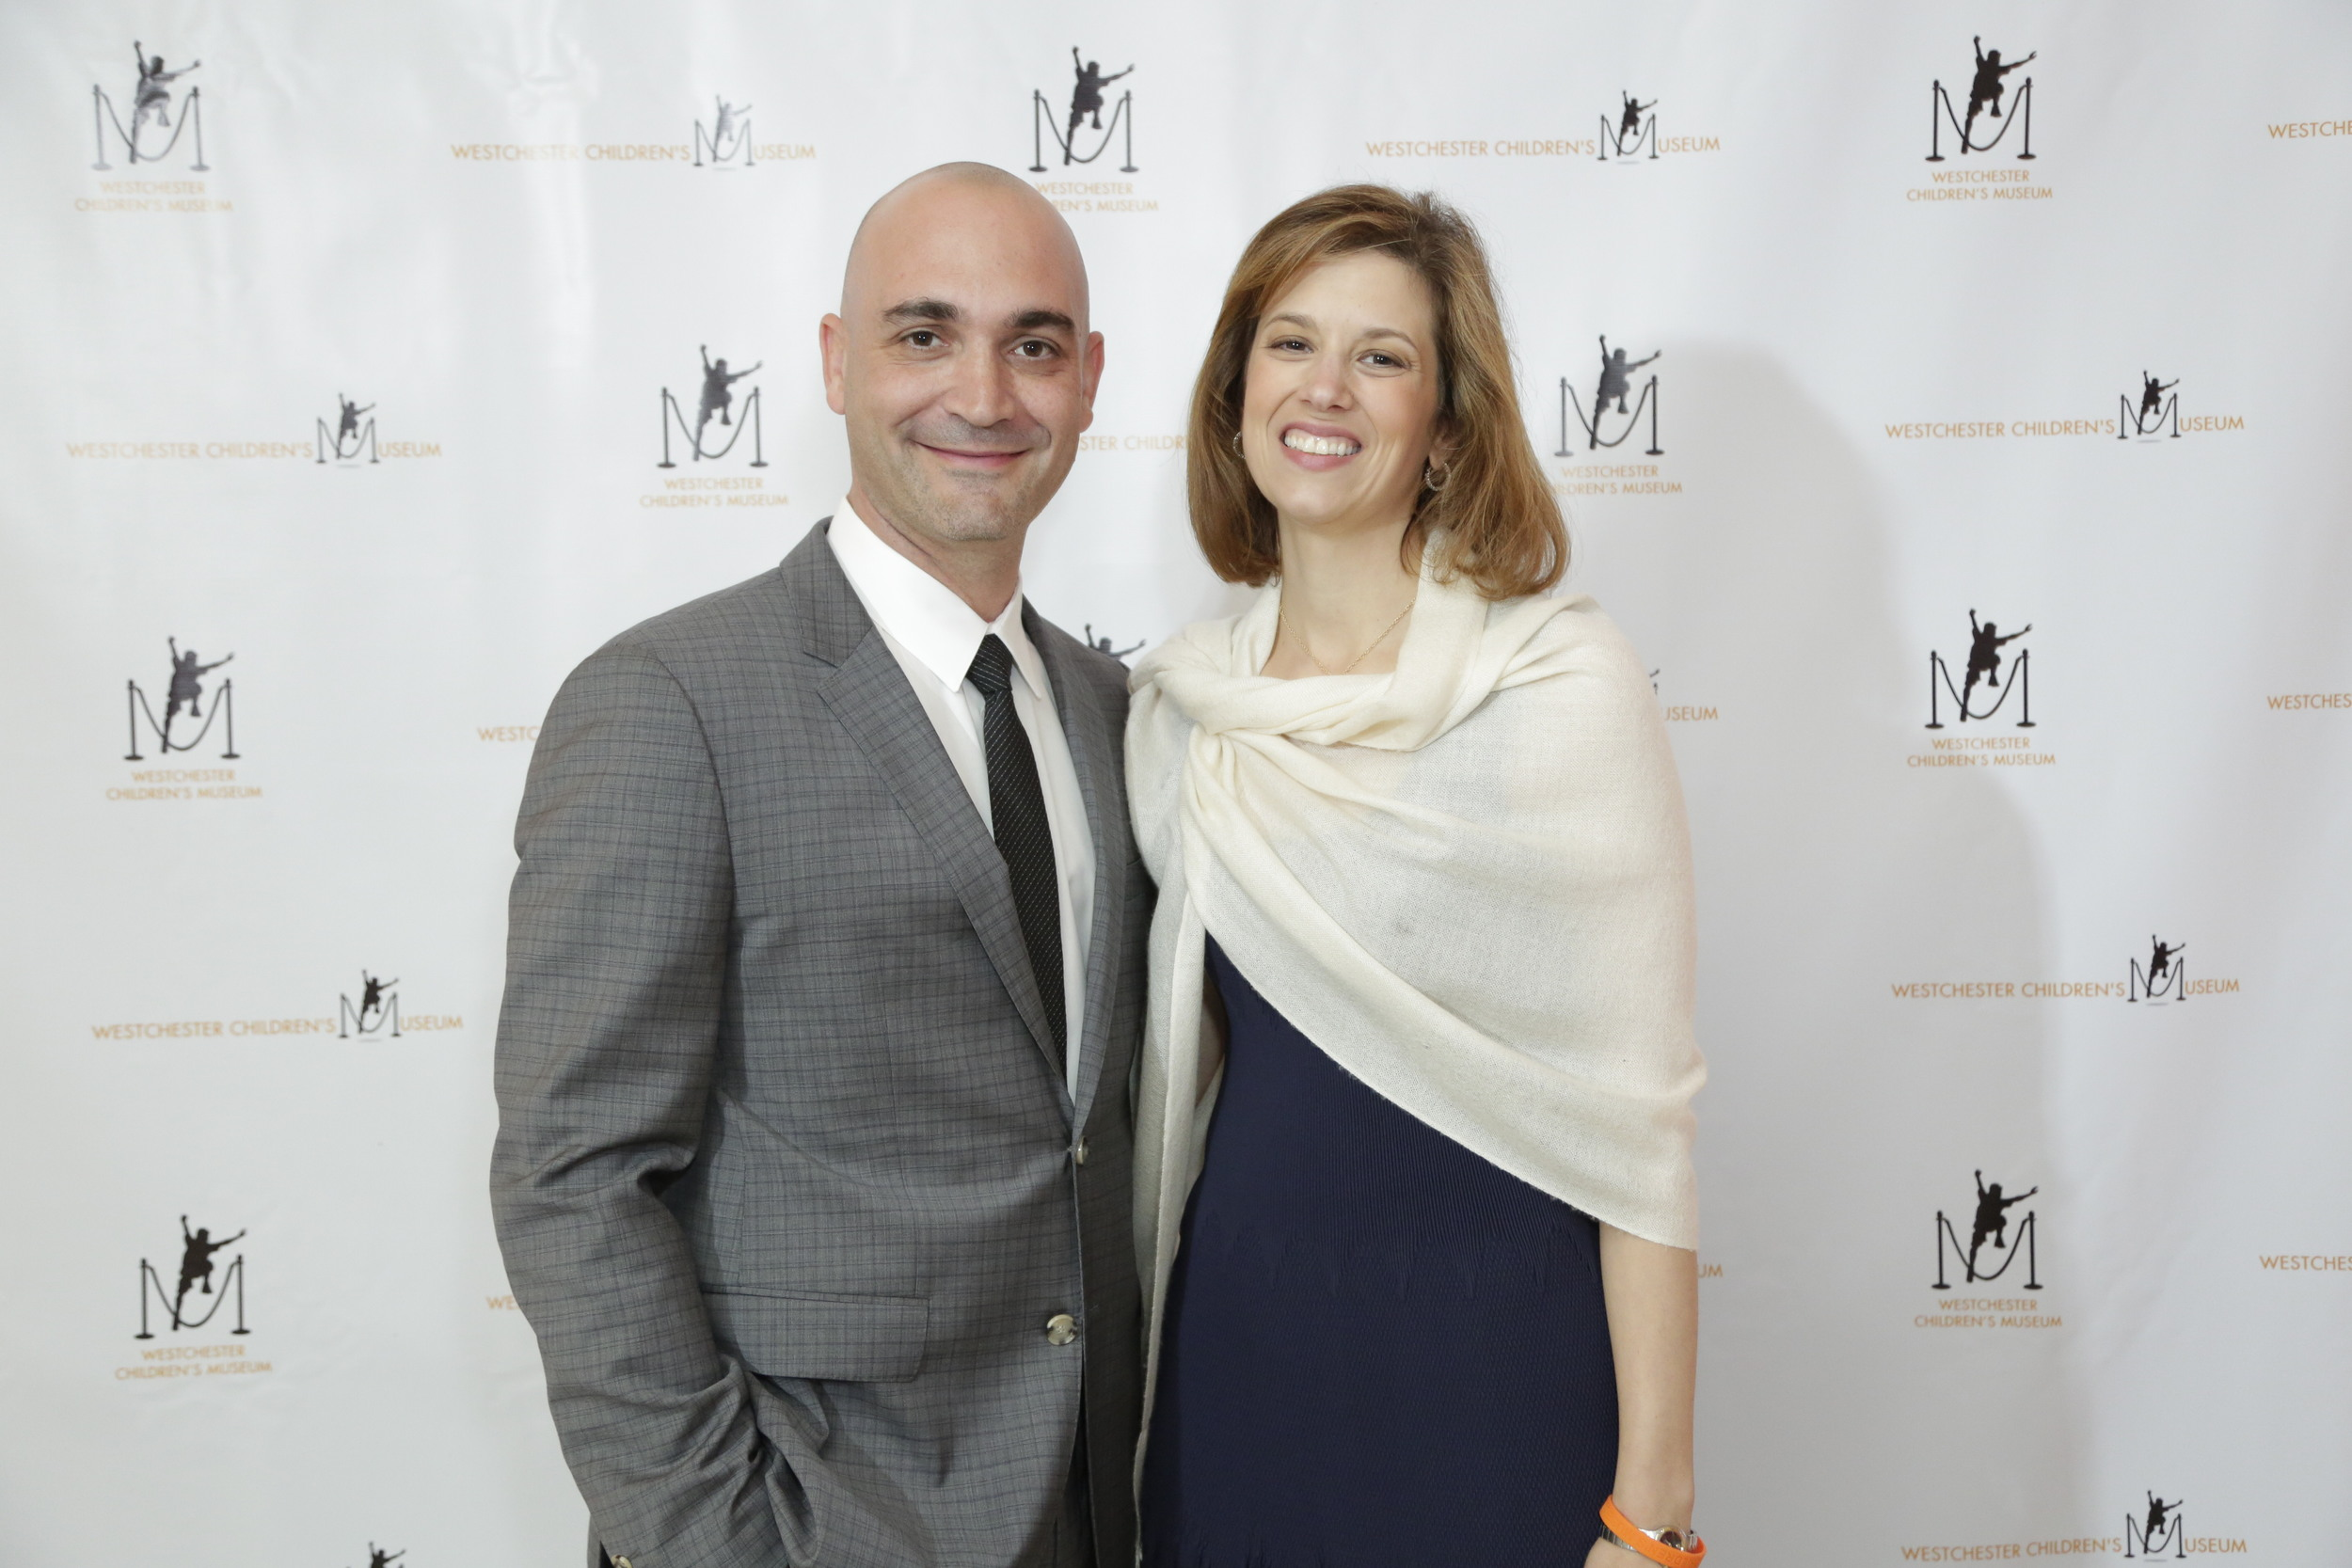 Event Co-Chairs: David Milowitz and Stacey Schutzer